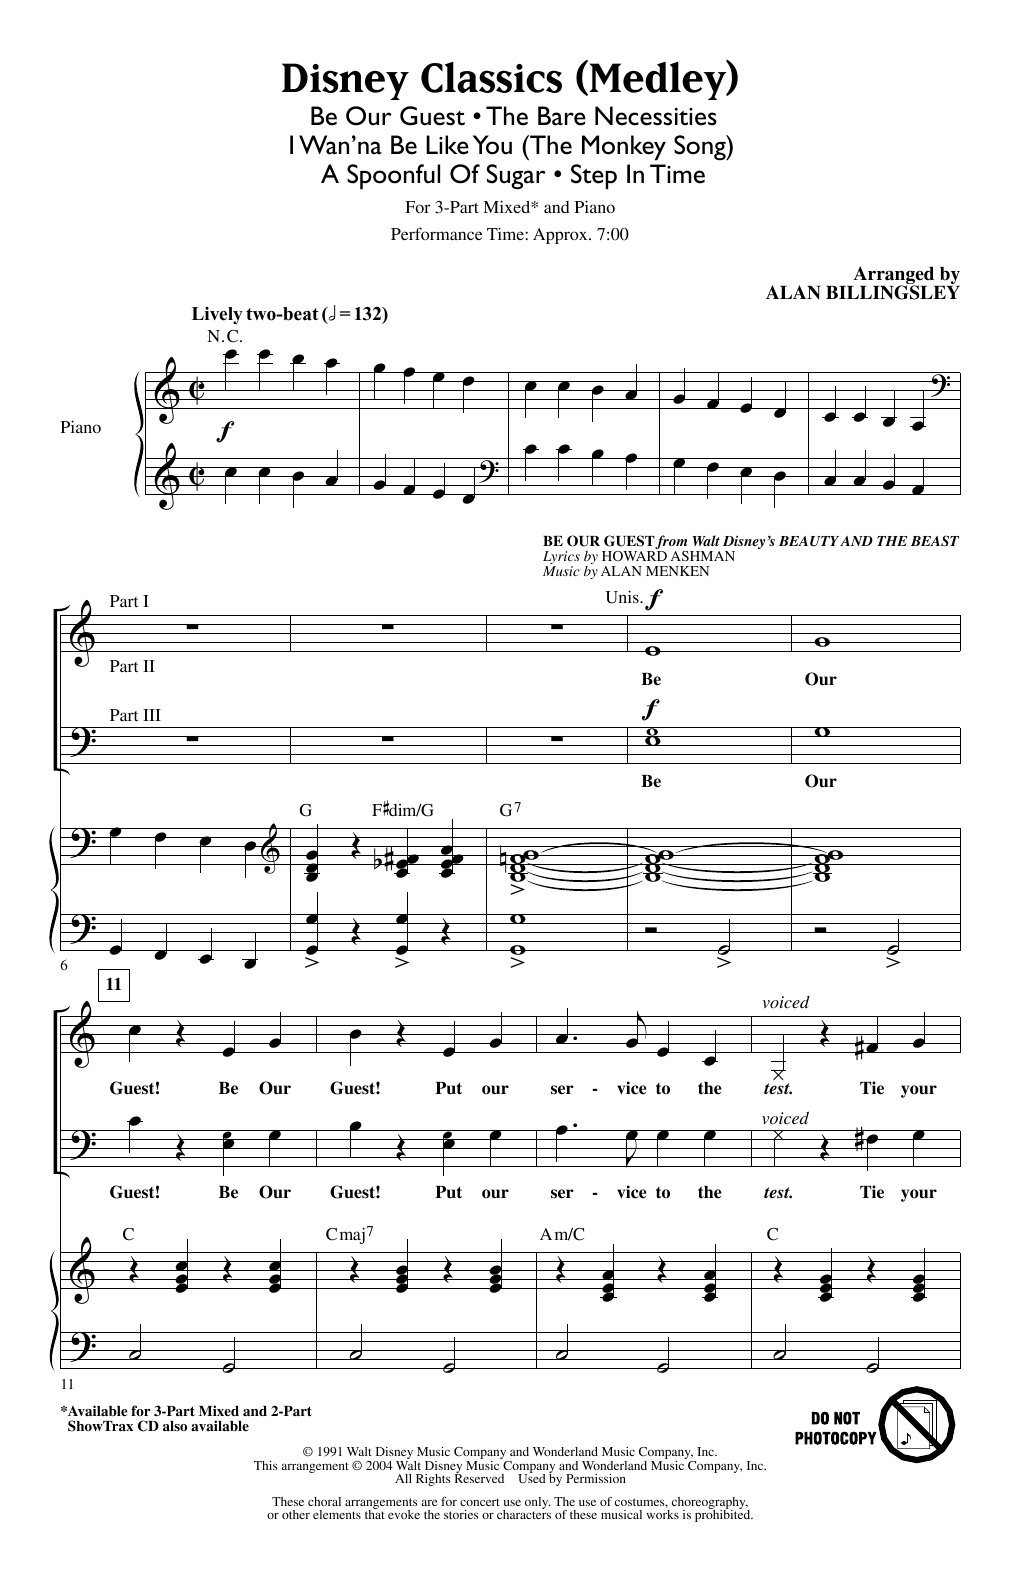 Download Alan Billingsley 'Disney Classics (Medley)' Digital Sheet Music Notes & Chords and start playing in minutes